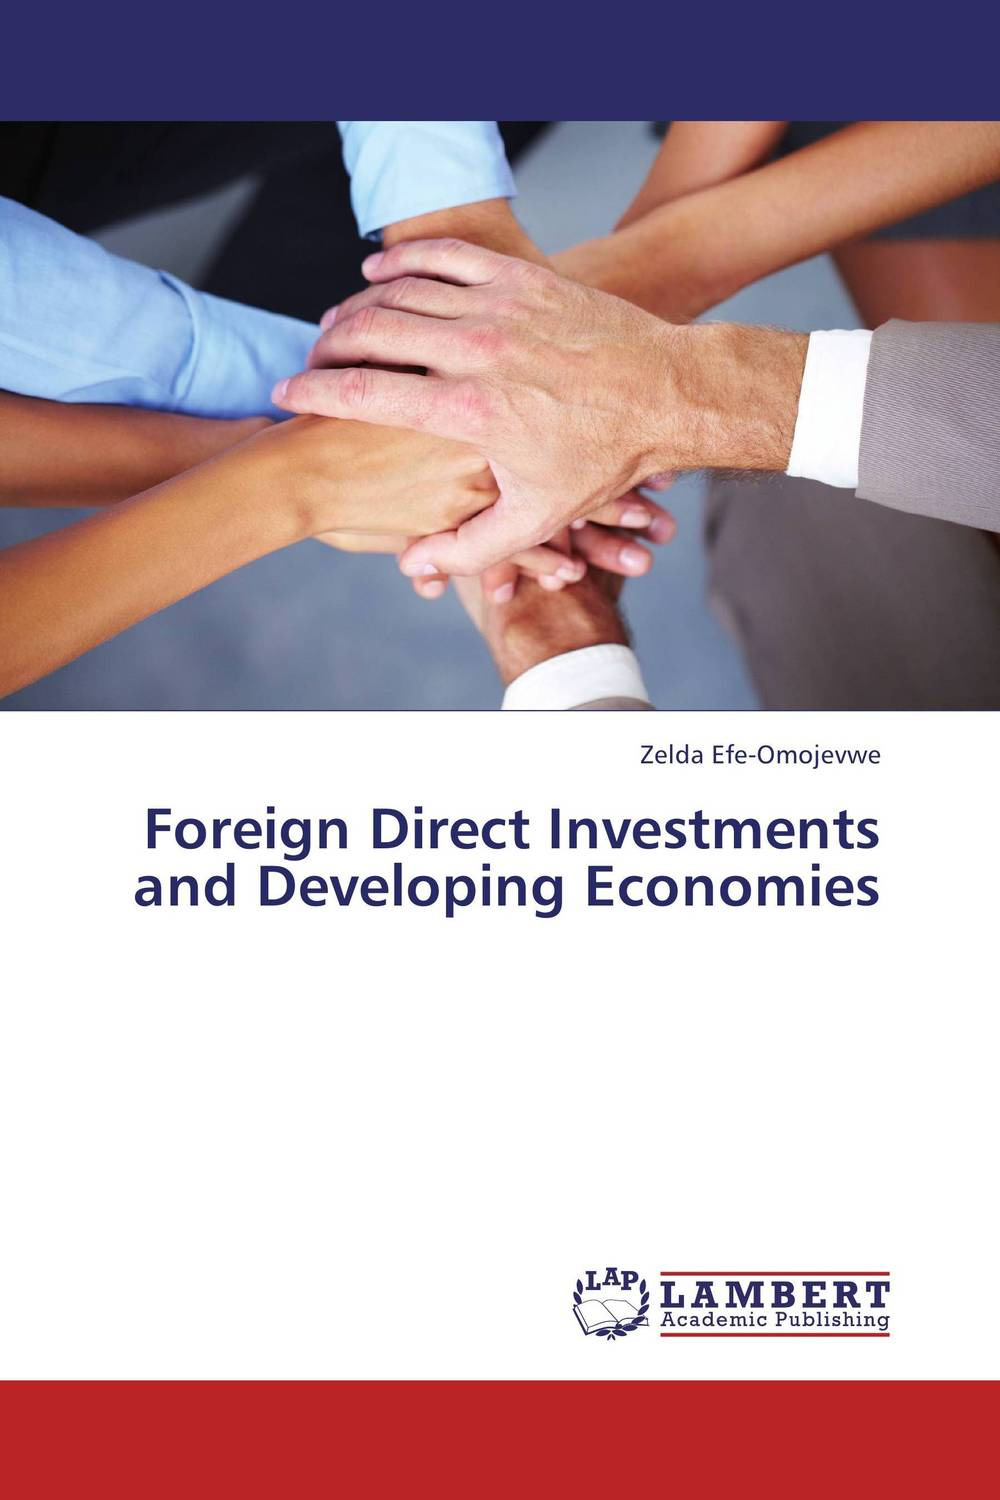 Foreign Direct Investments and Developing Economies